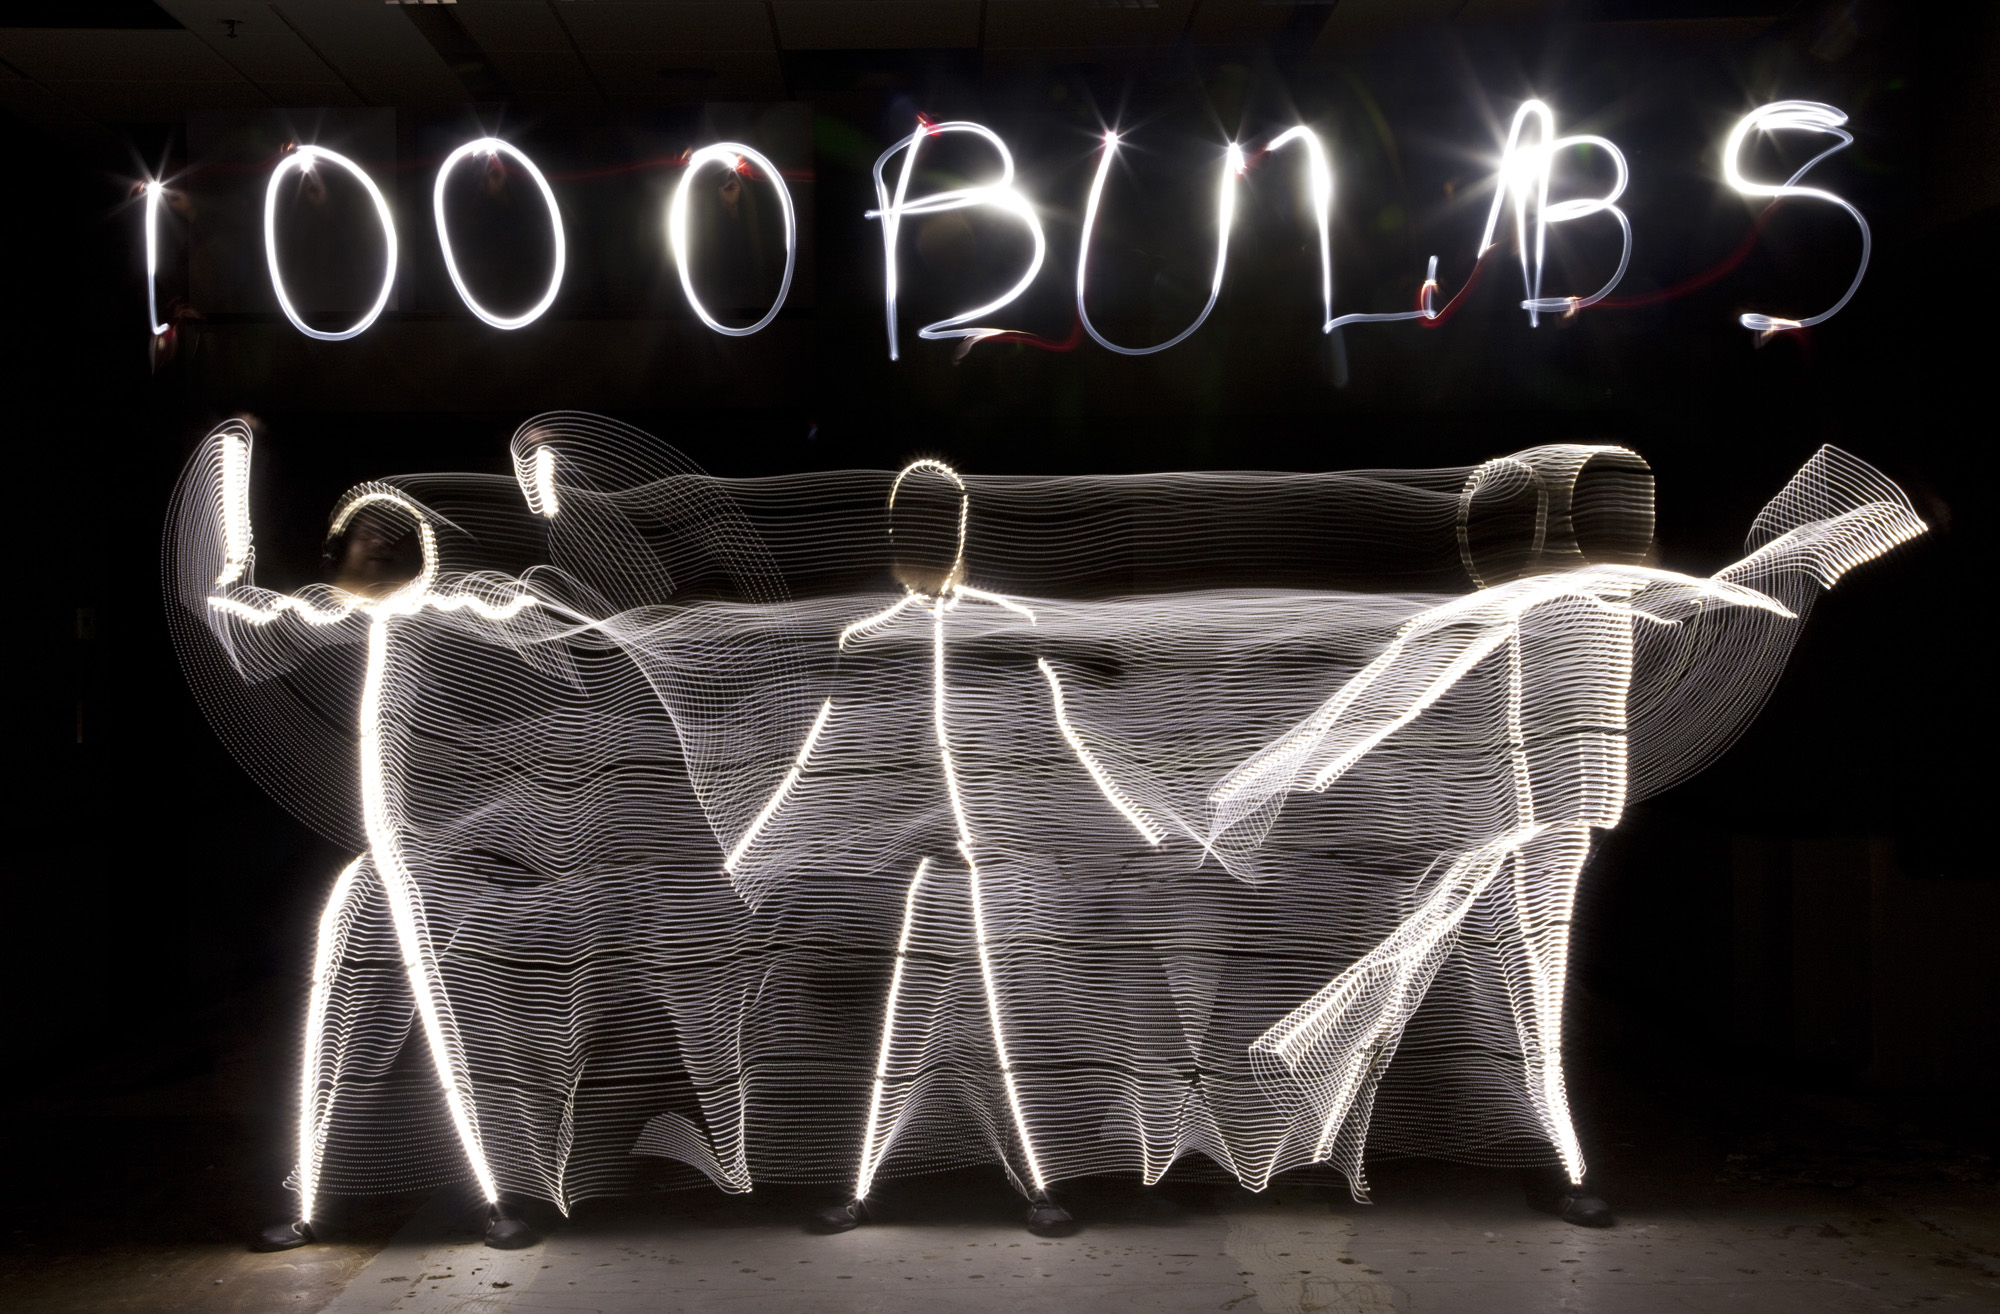 Light Painting from an LED Light Suit